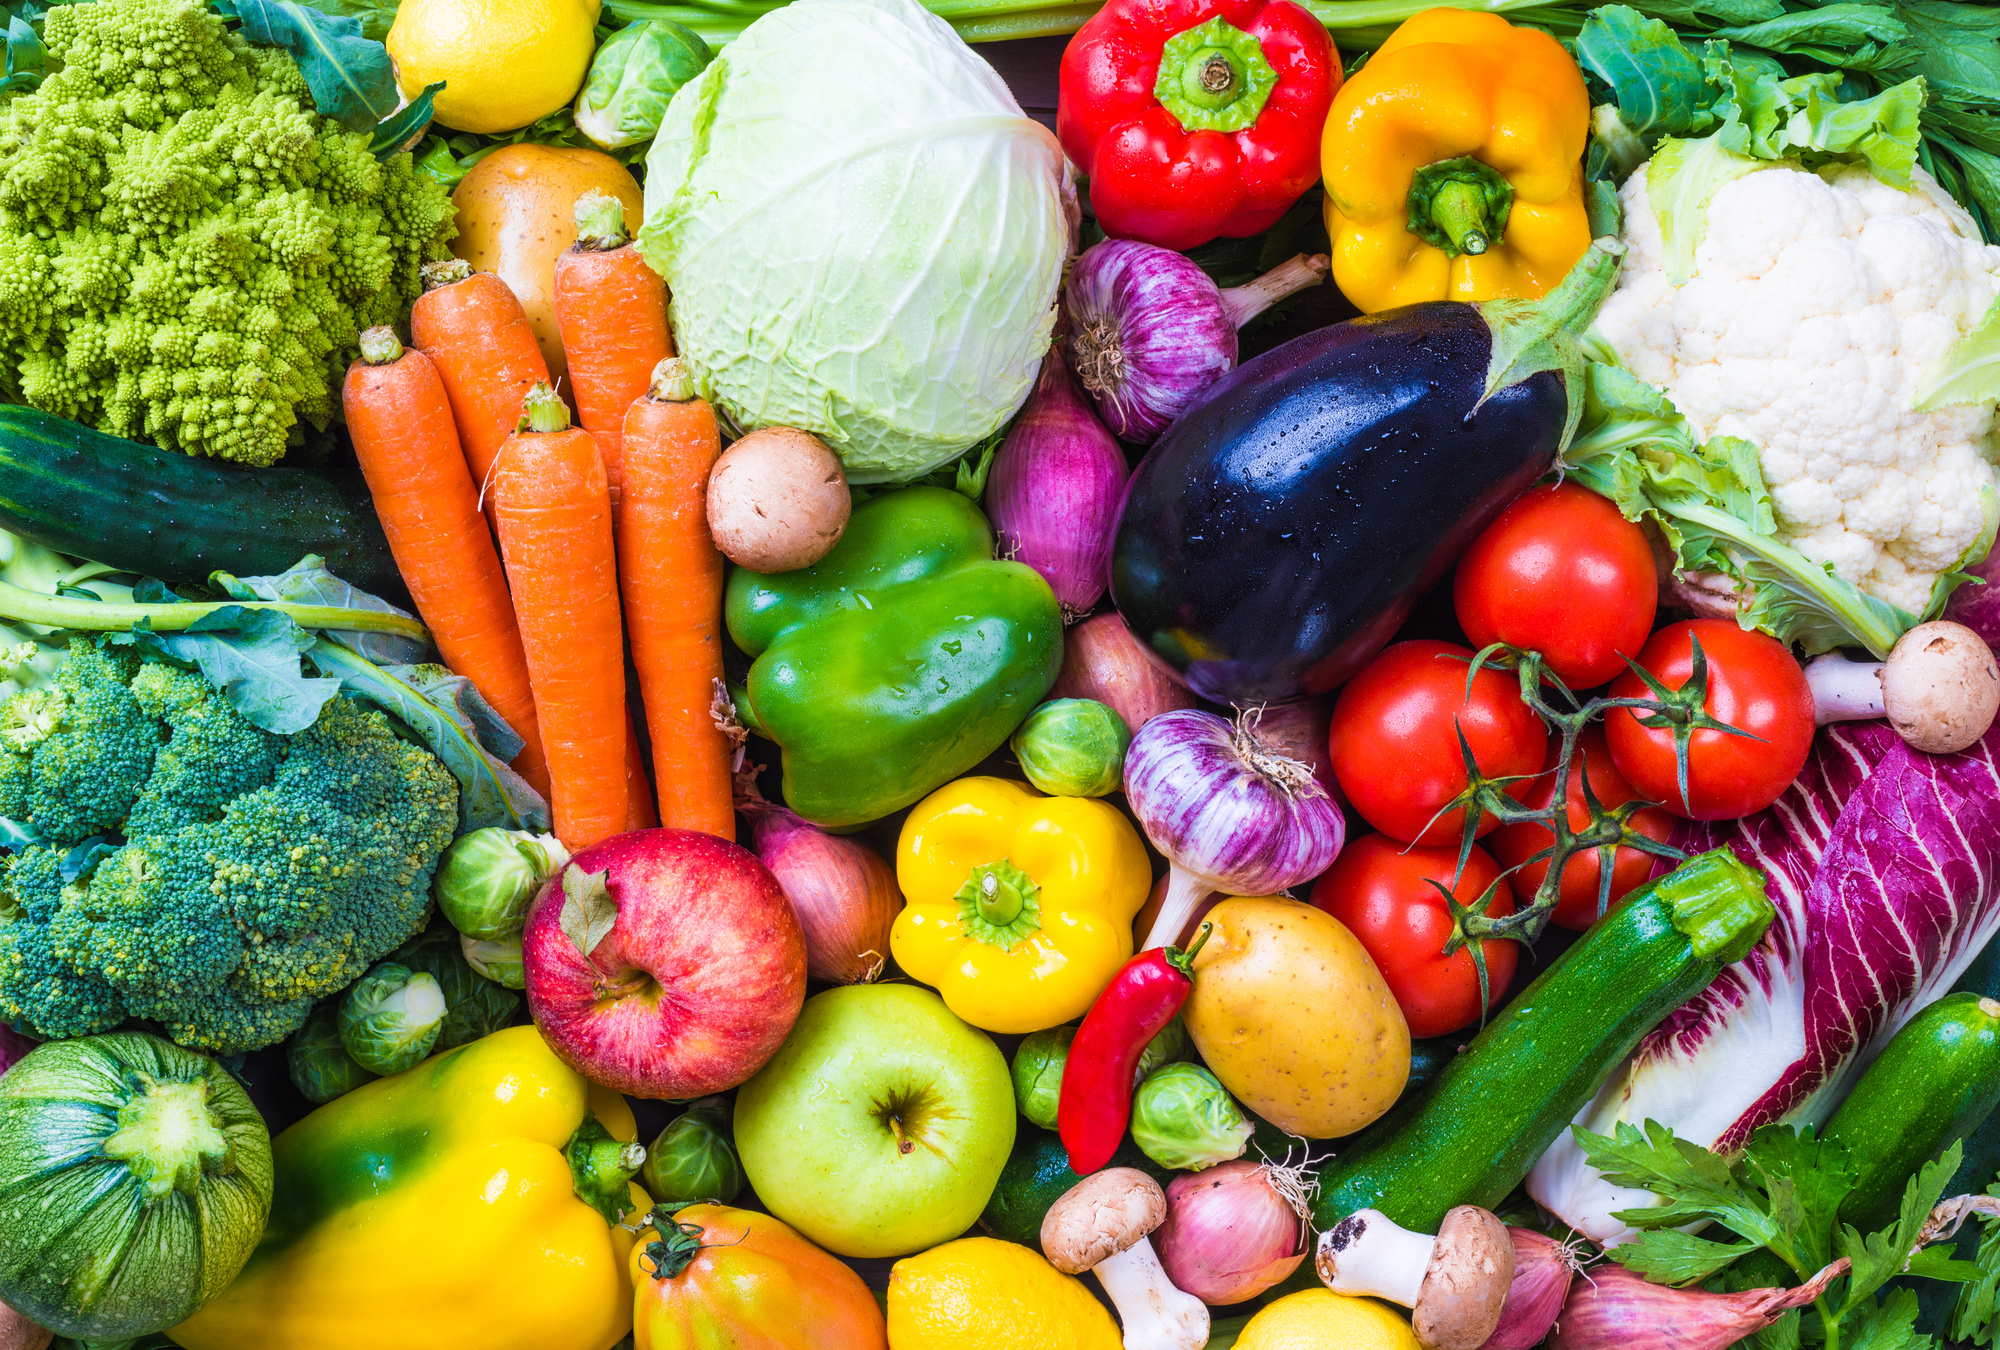 Can Being a Vegetarian Help You Live a Greener Lifestyle?